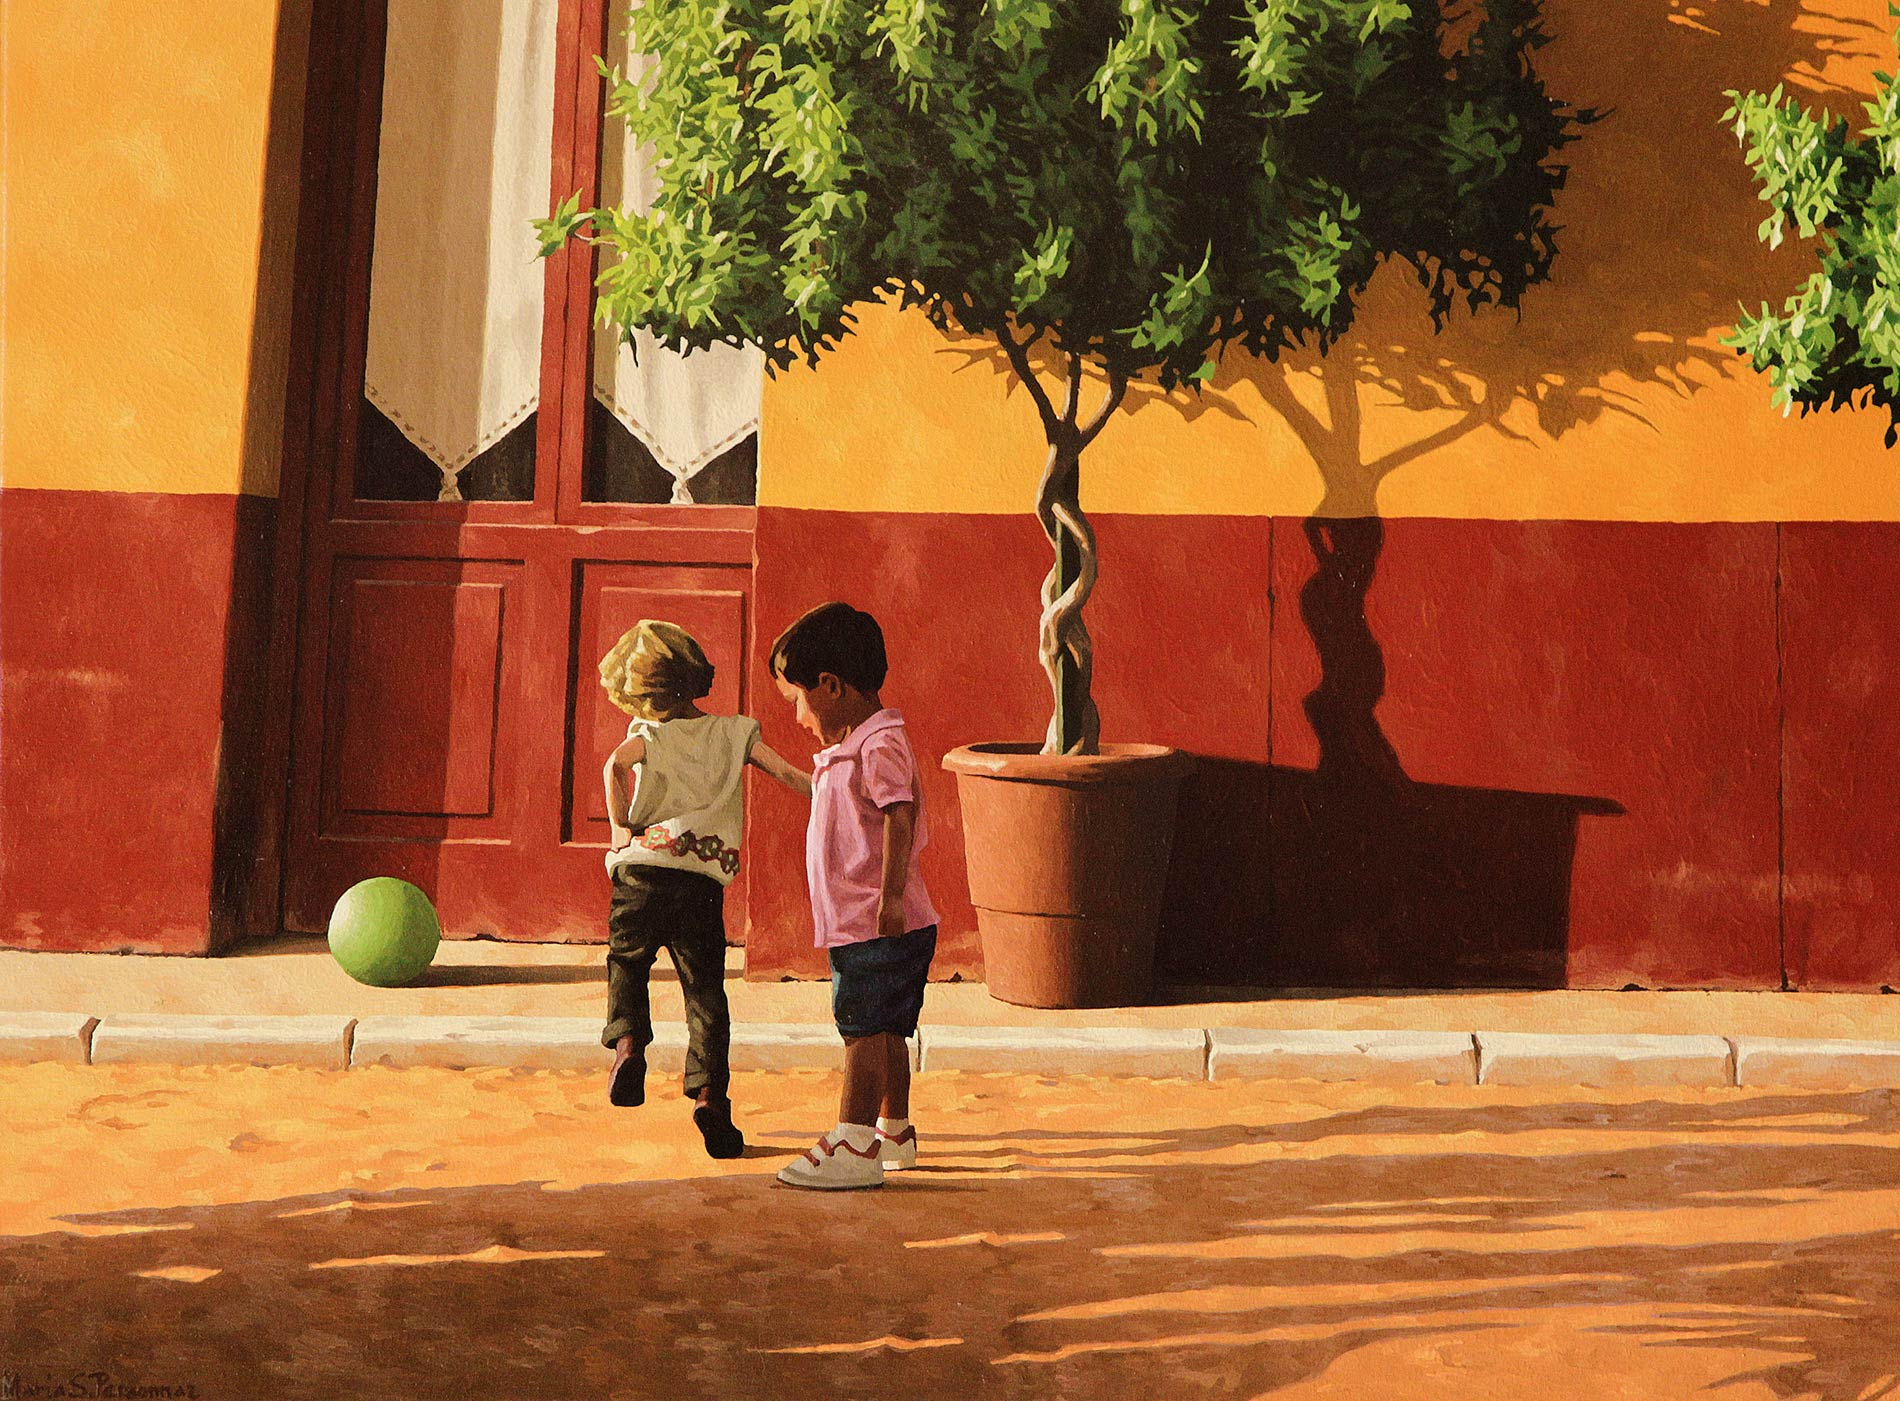 Two children and green ball